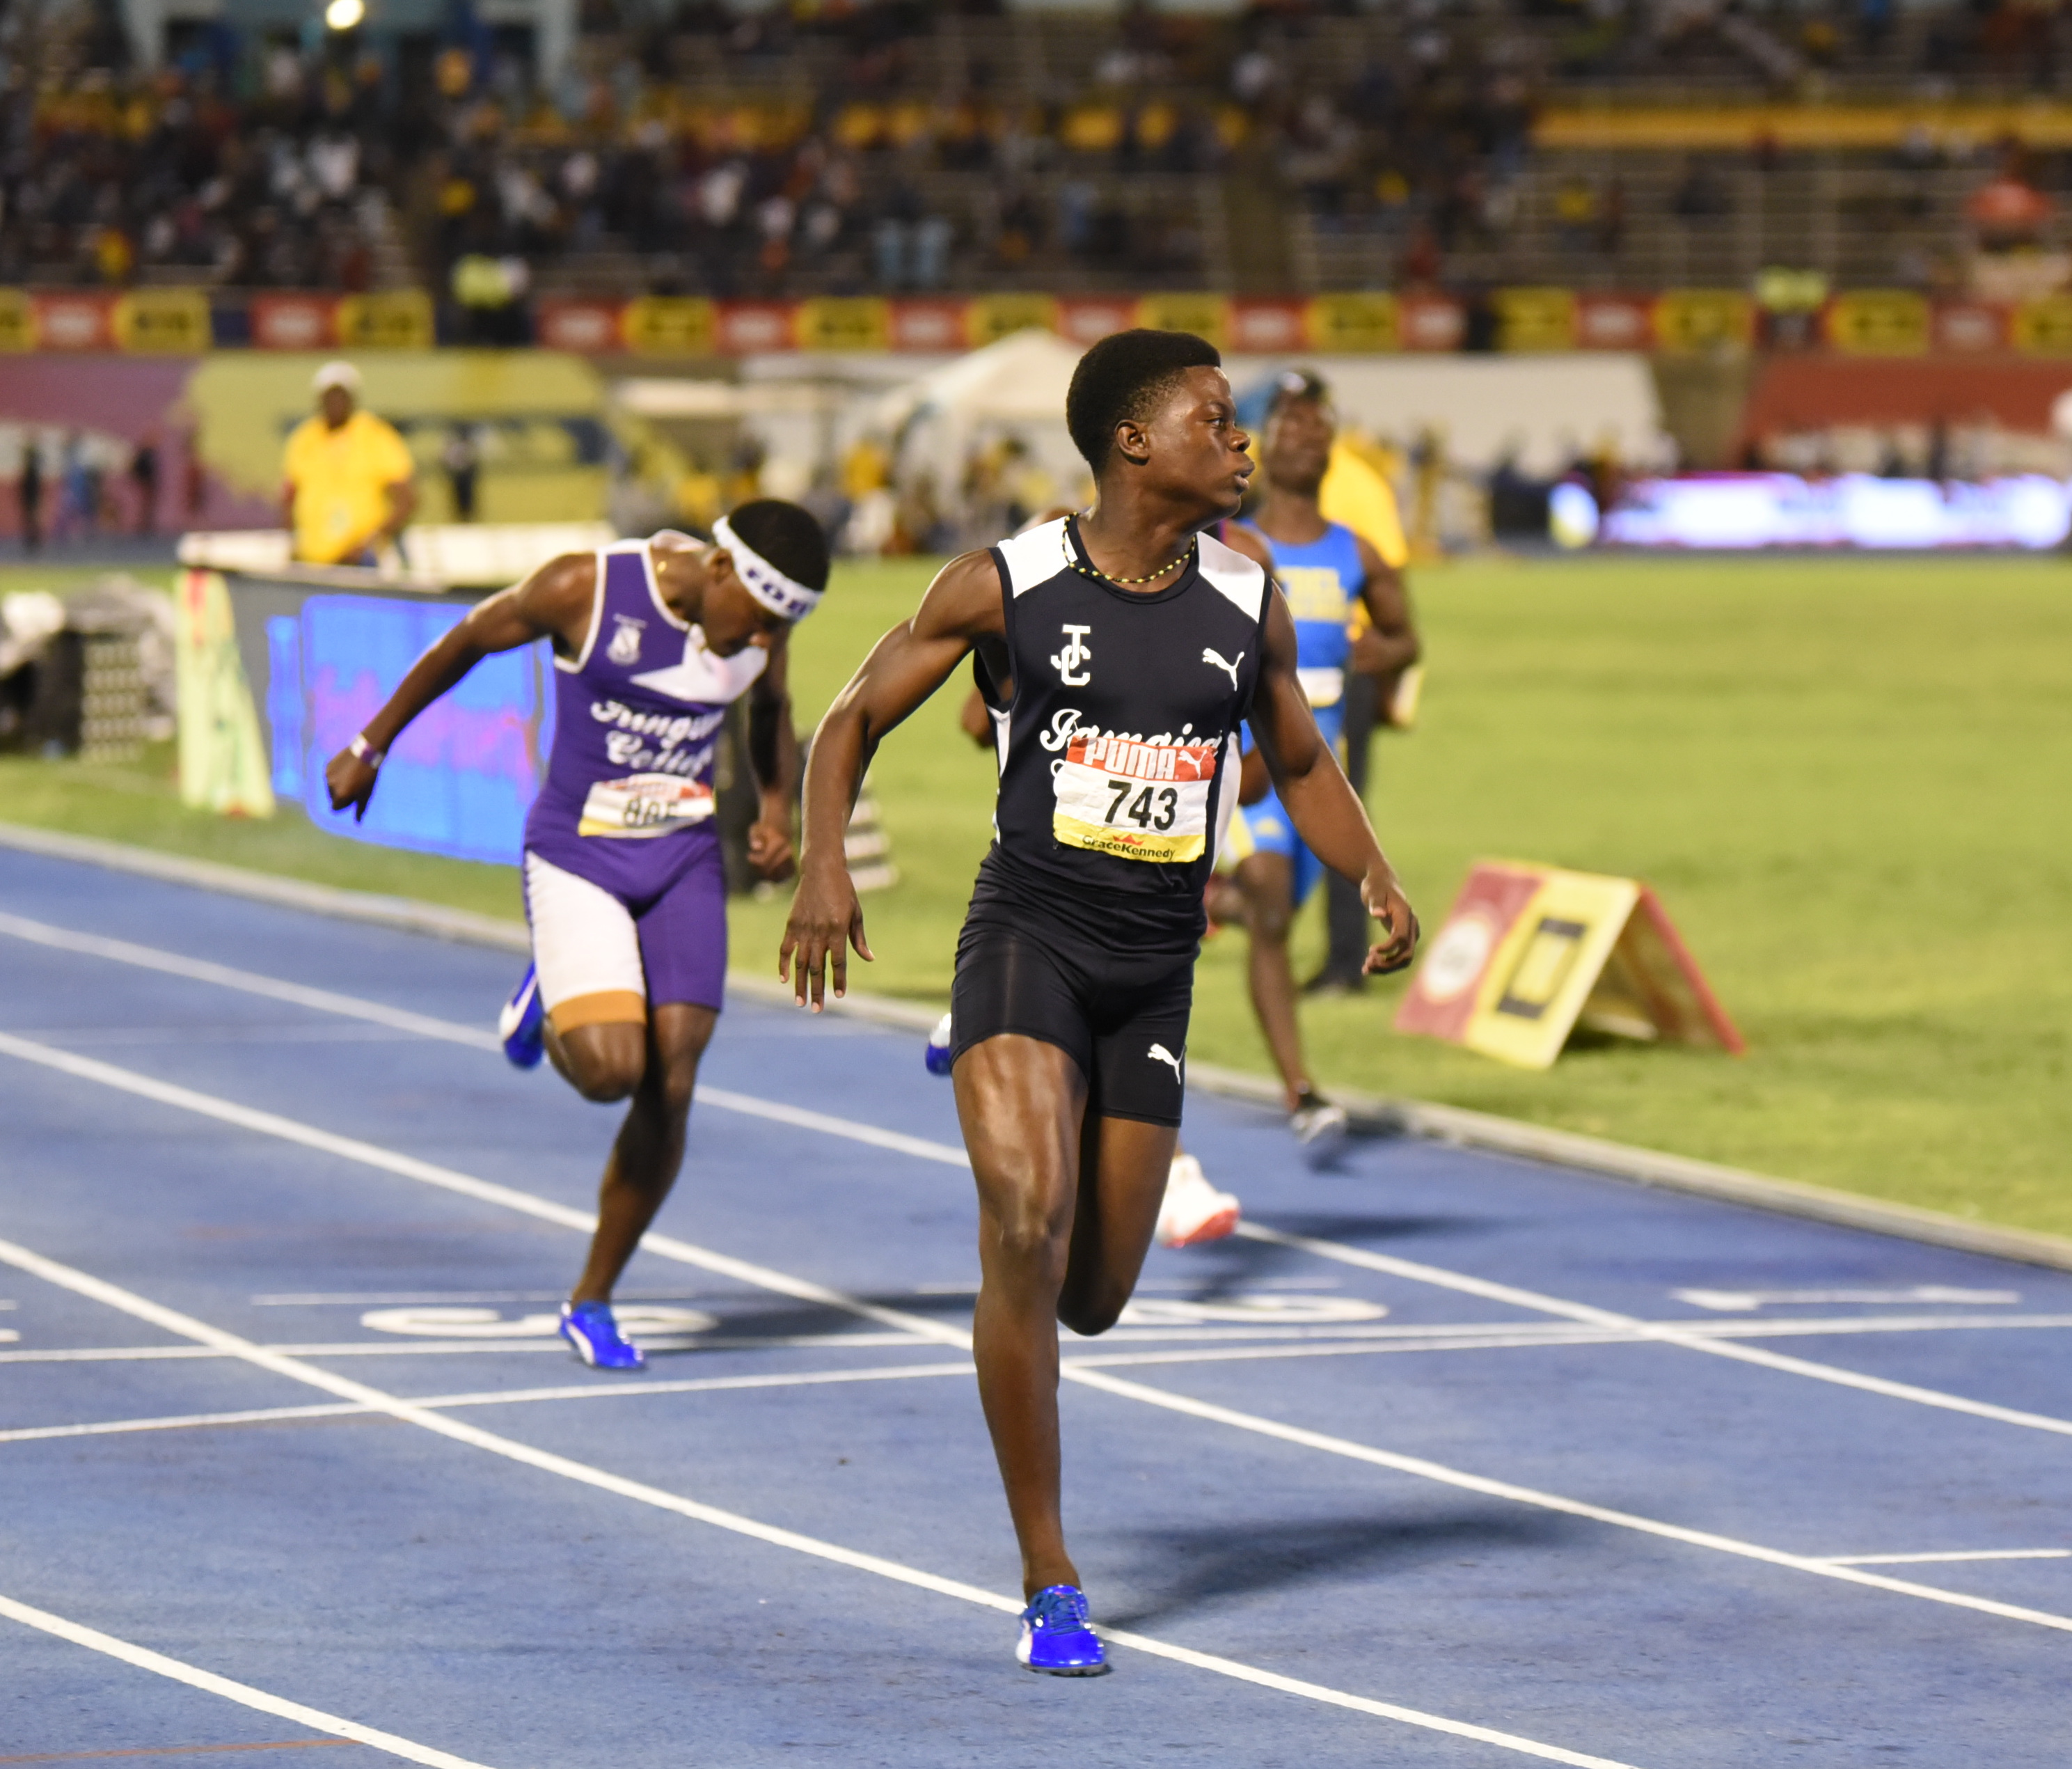 Christopher Scott's Class 3 victory of 10.73, earning Jamaica College (JC) 10 points at Champs 2019